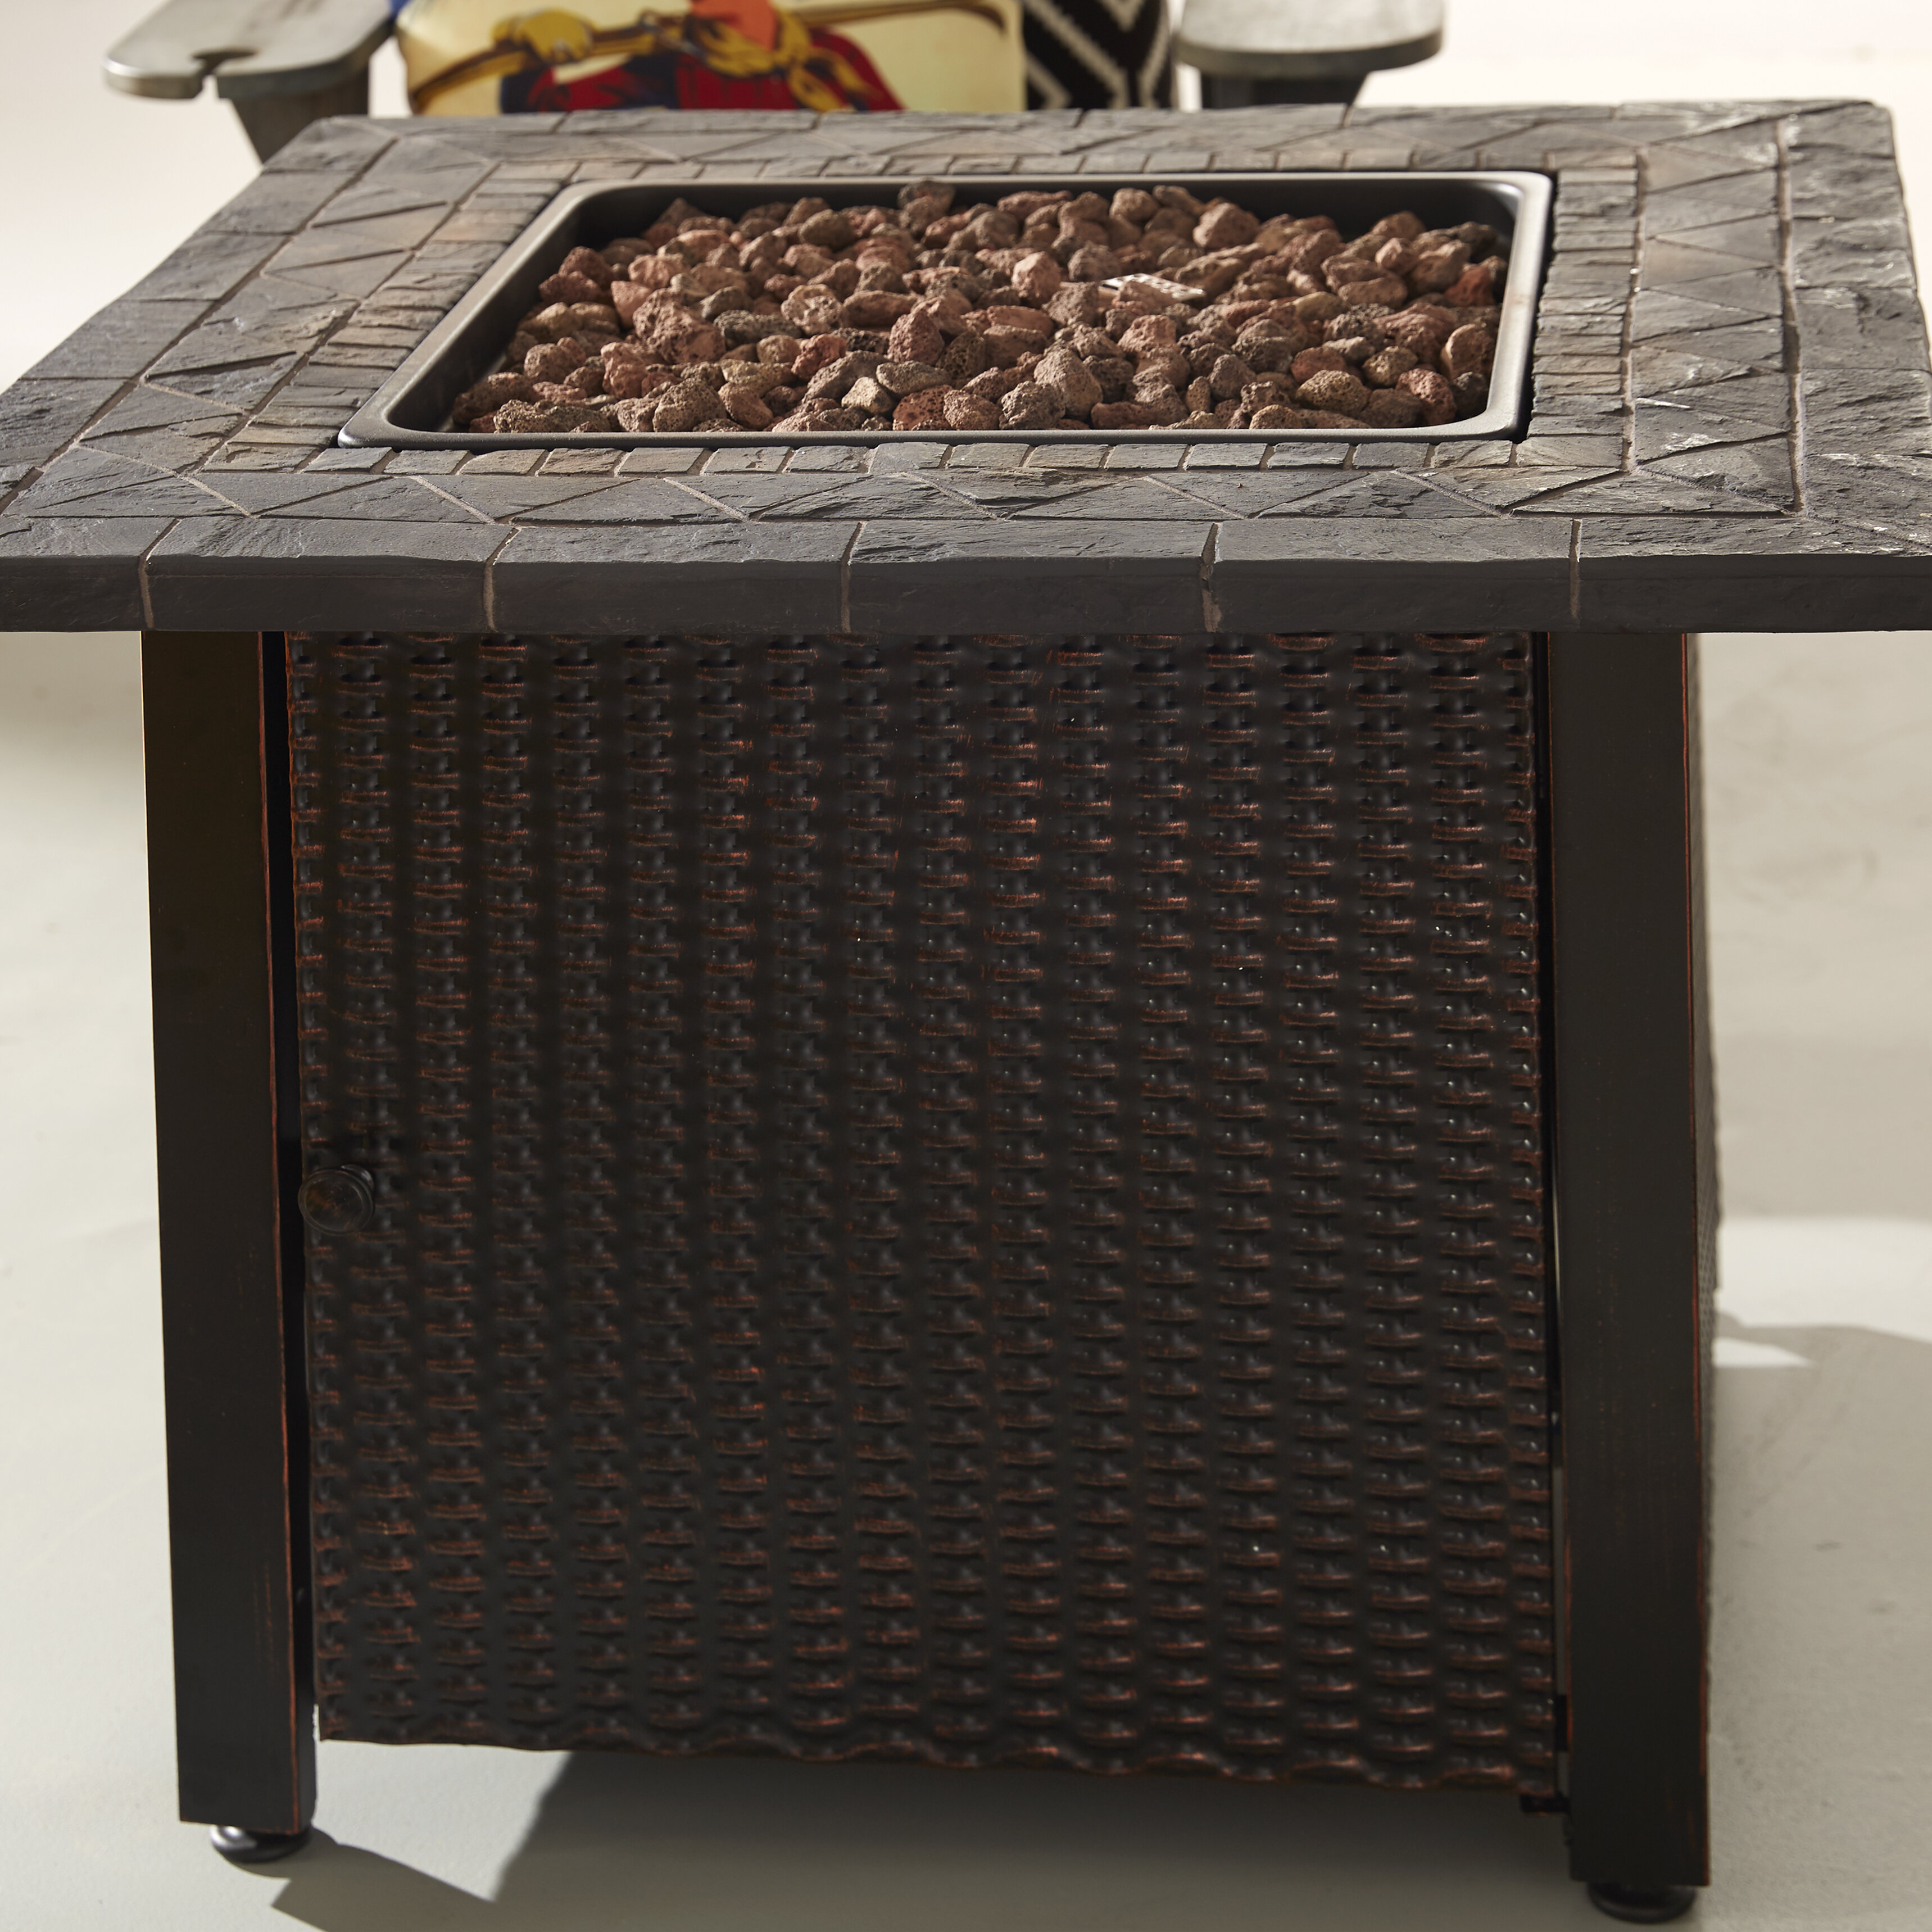 Endless Summer Outdoor Propane Fire Pit Table Reviews Wayfair Ca